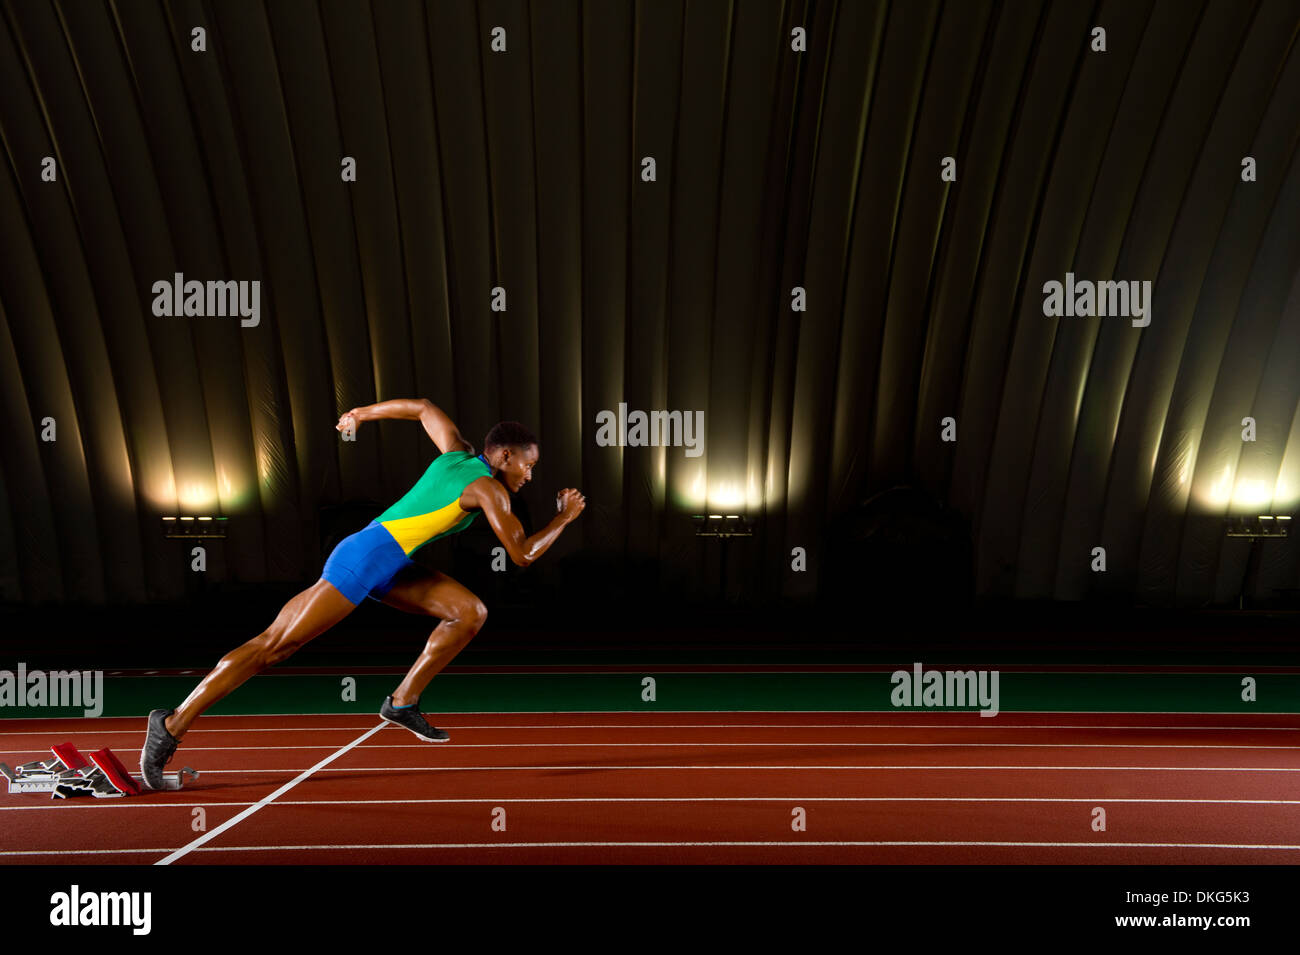 Young woman sprinting from starting blocks in stadium - Stock Image